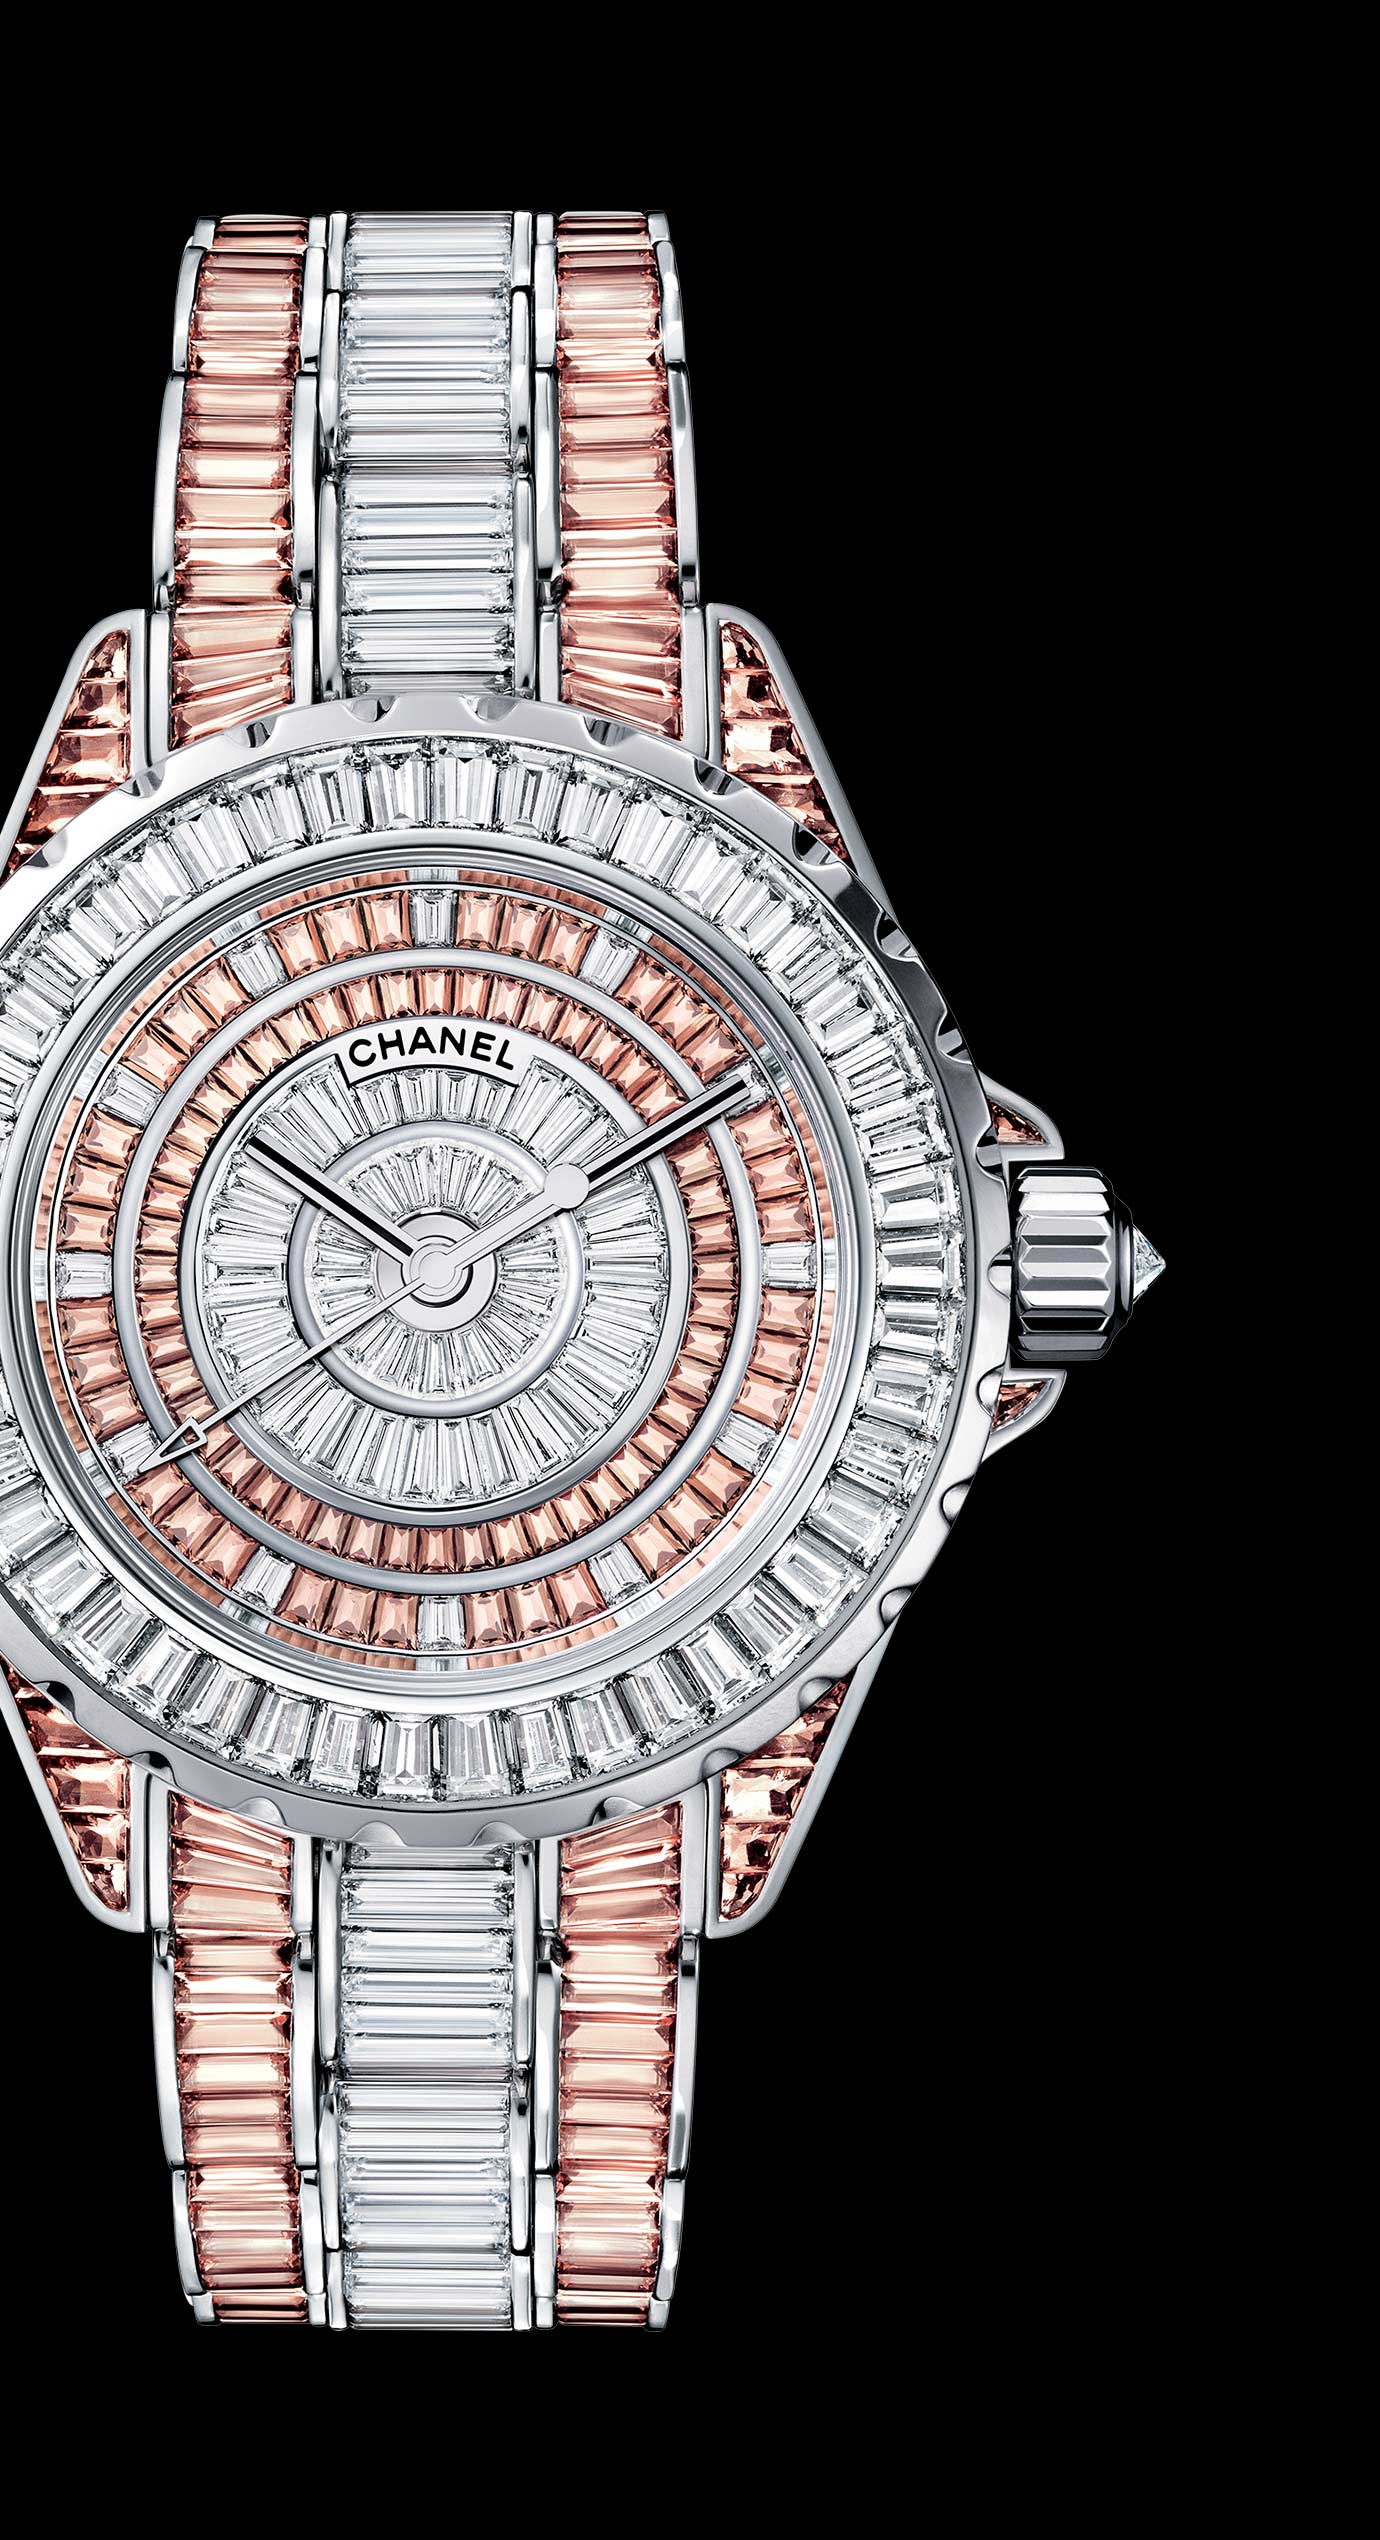 J12 High Jewellery in white gold, case, dial, bezel and bracelet set with baguette cut diamonds and cognac sapphires. - Enlarged view